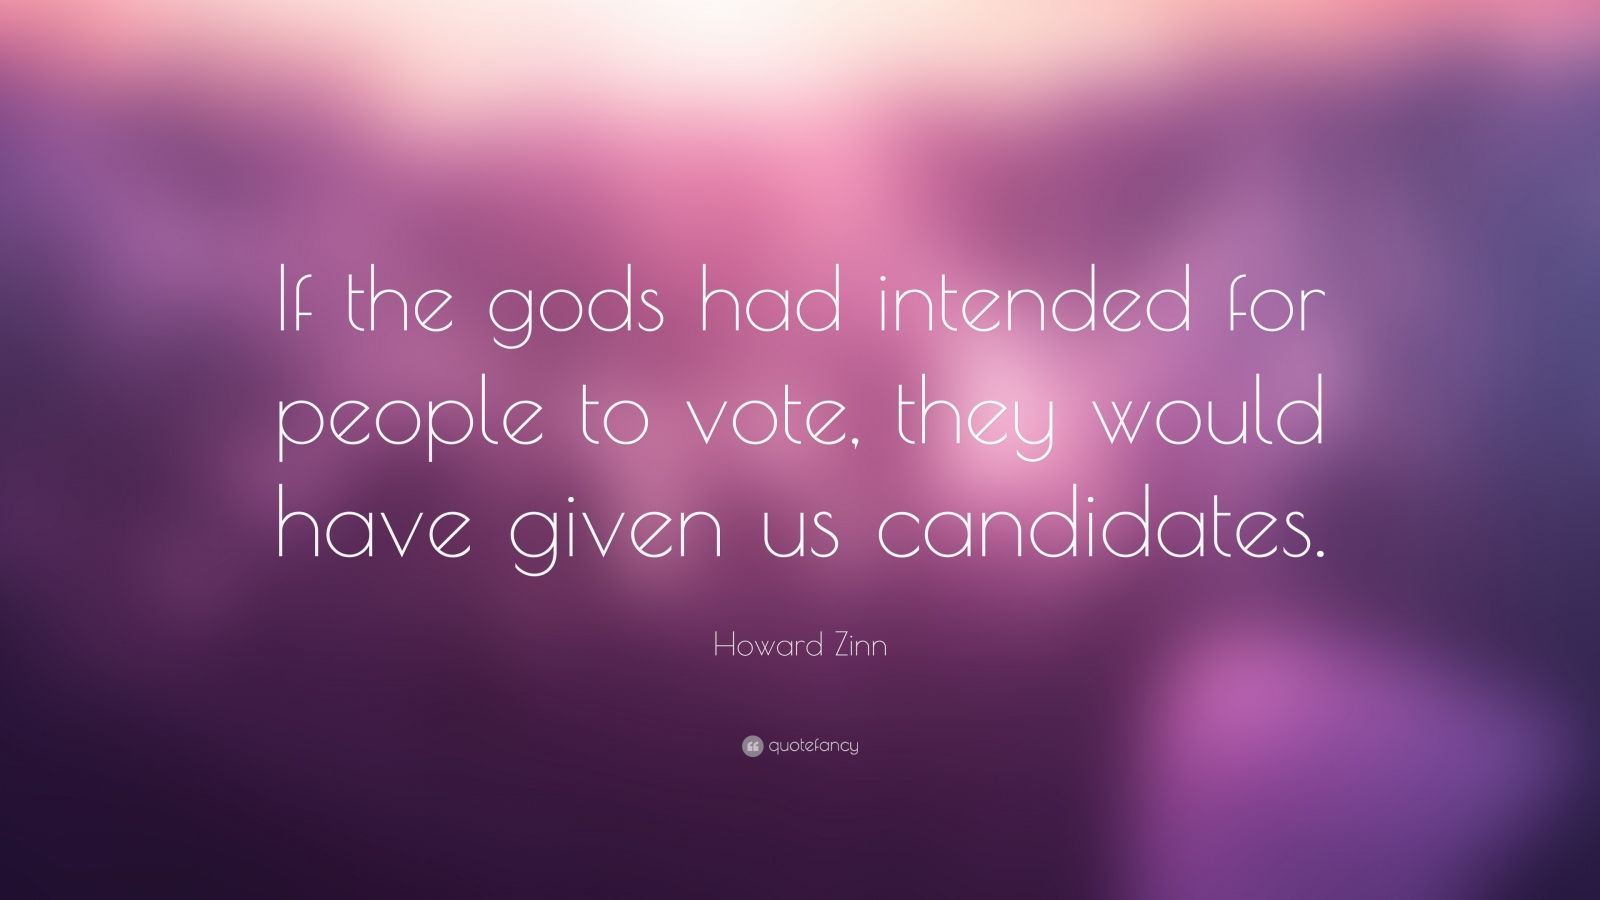 """Howard Zinn Quote: """"If the gods had intended for people to vote, they would have given us candidates."""""""